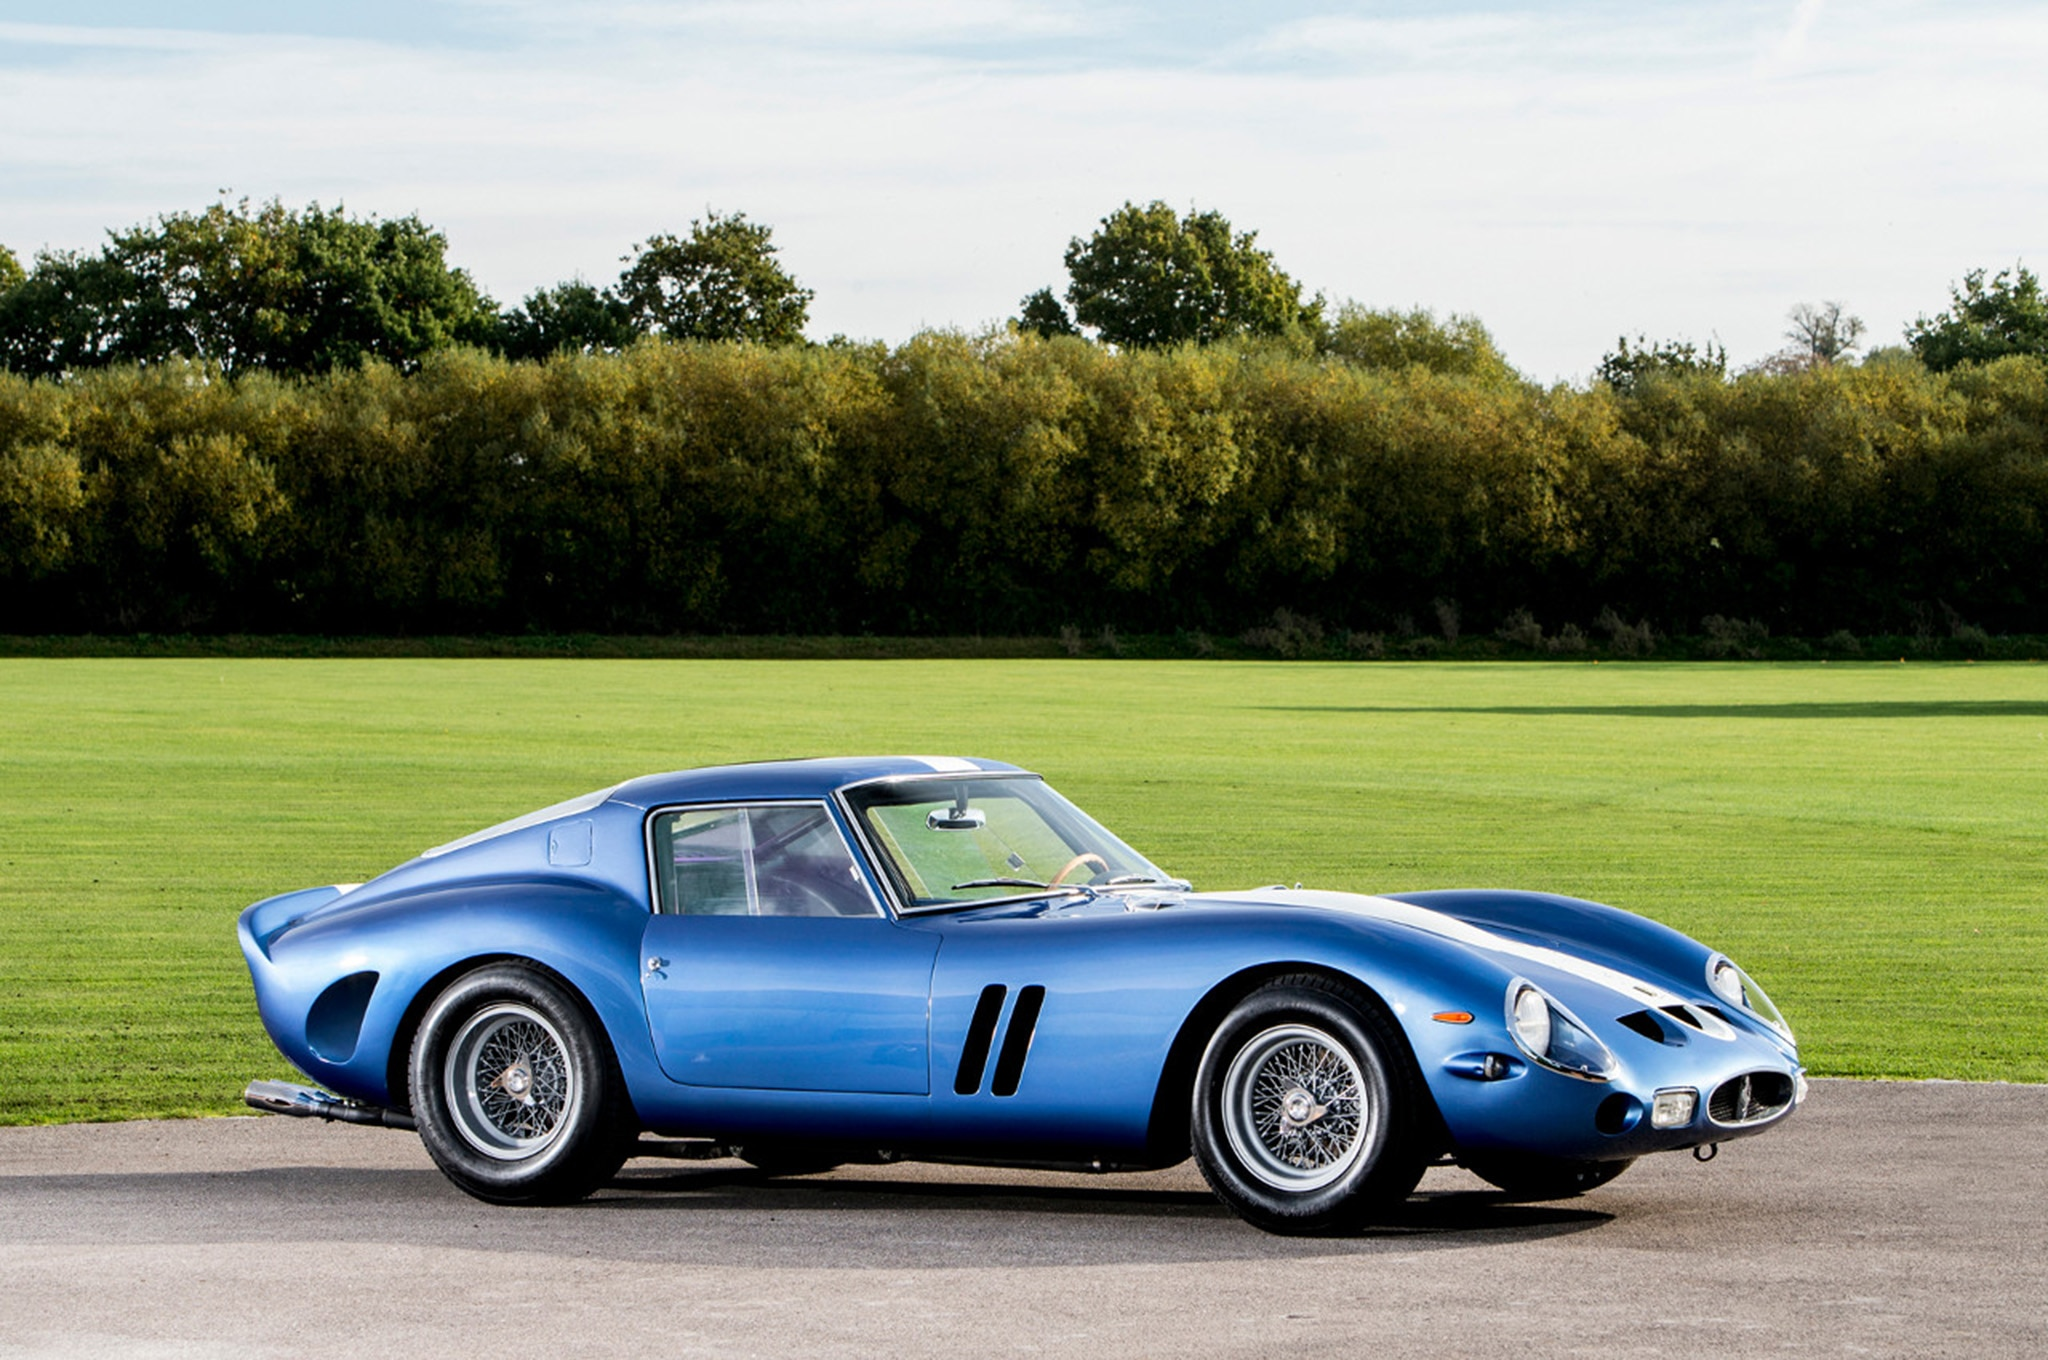 1962 ferrari 250 gto reportedly up for grabs for 56 million automobile magazine